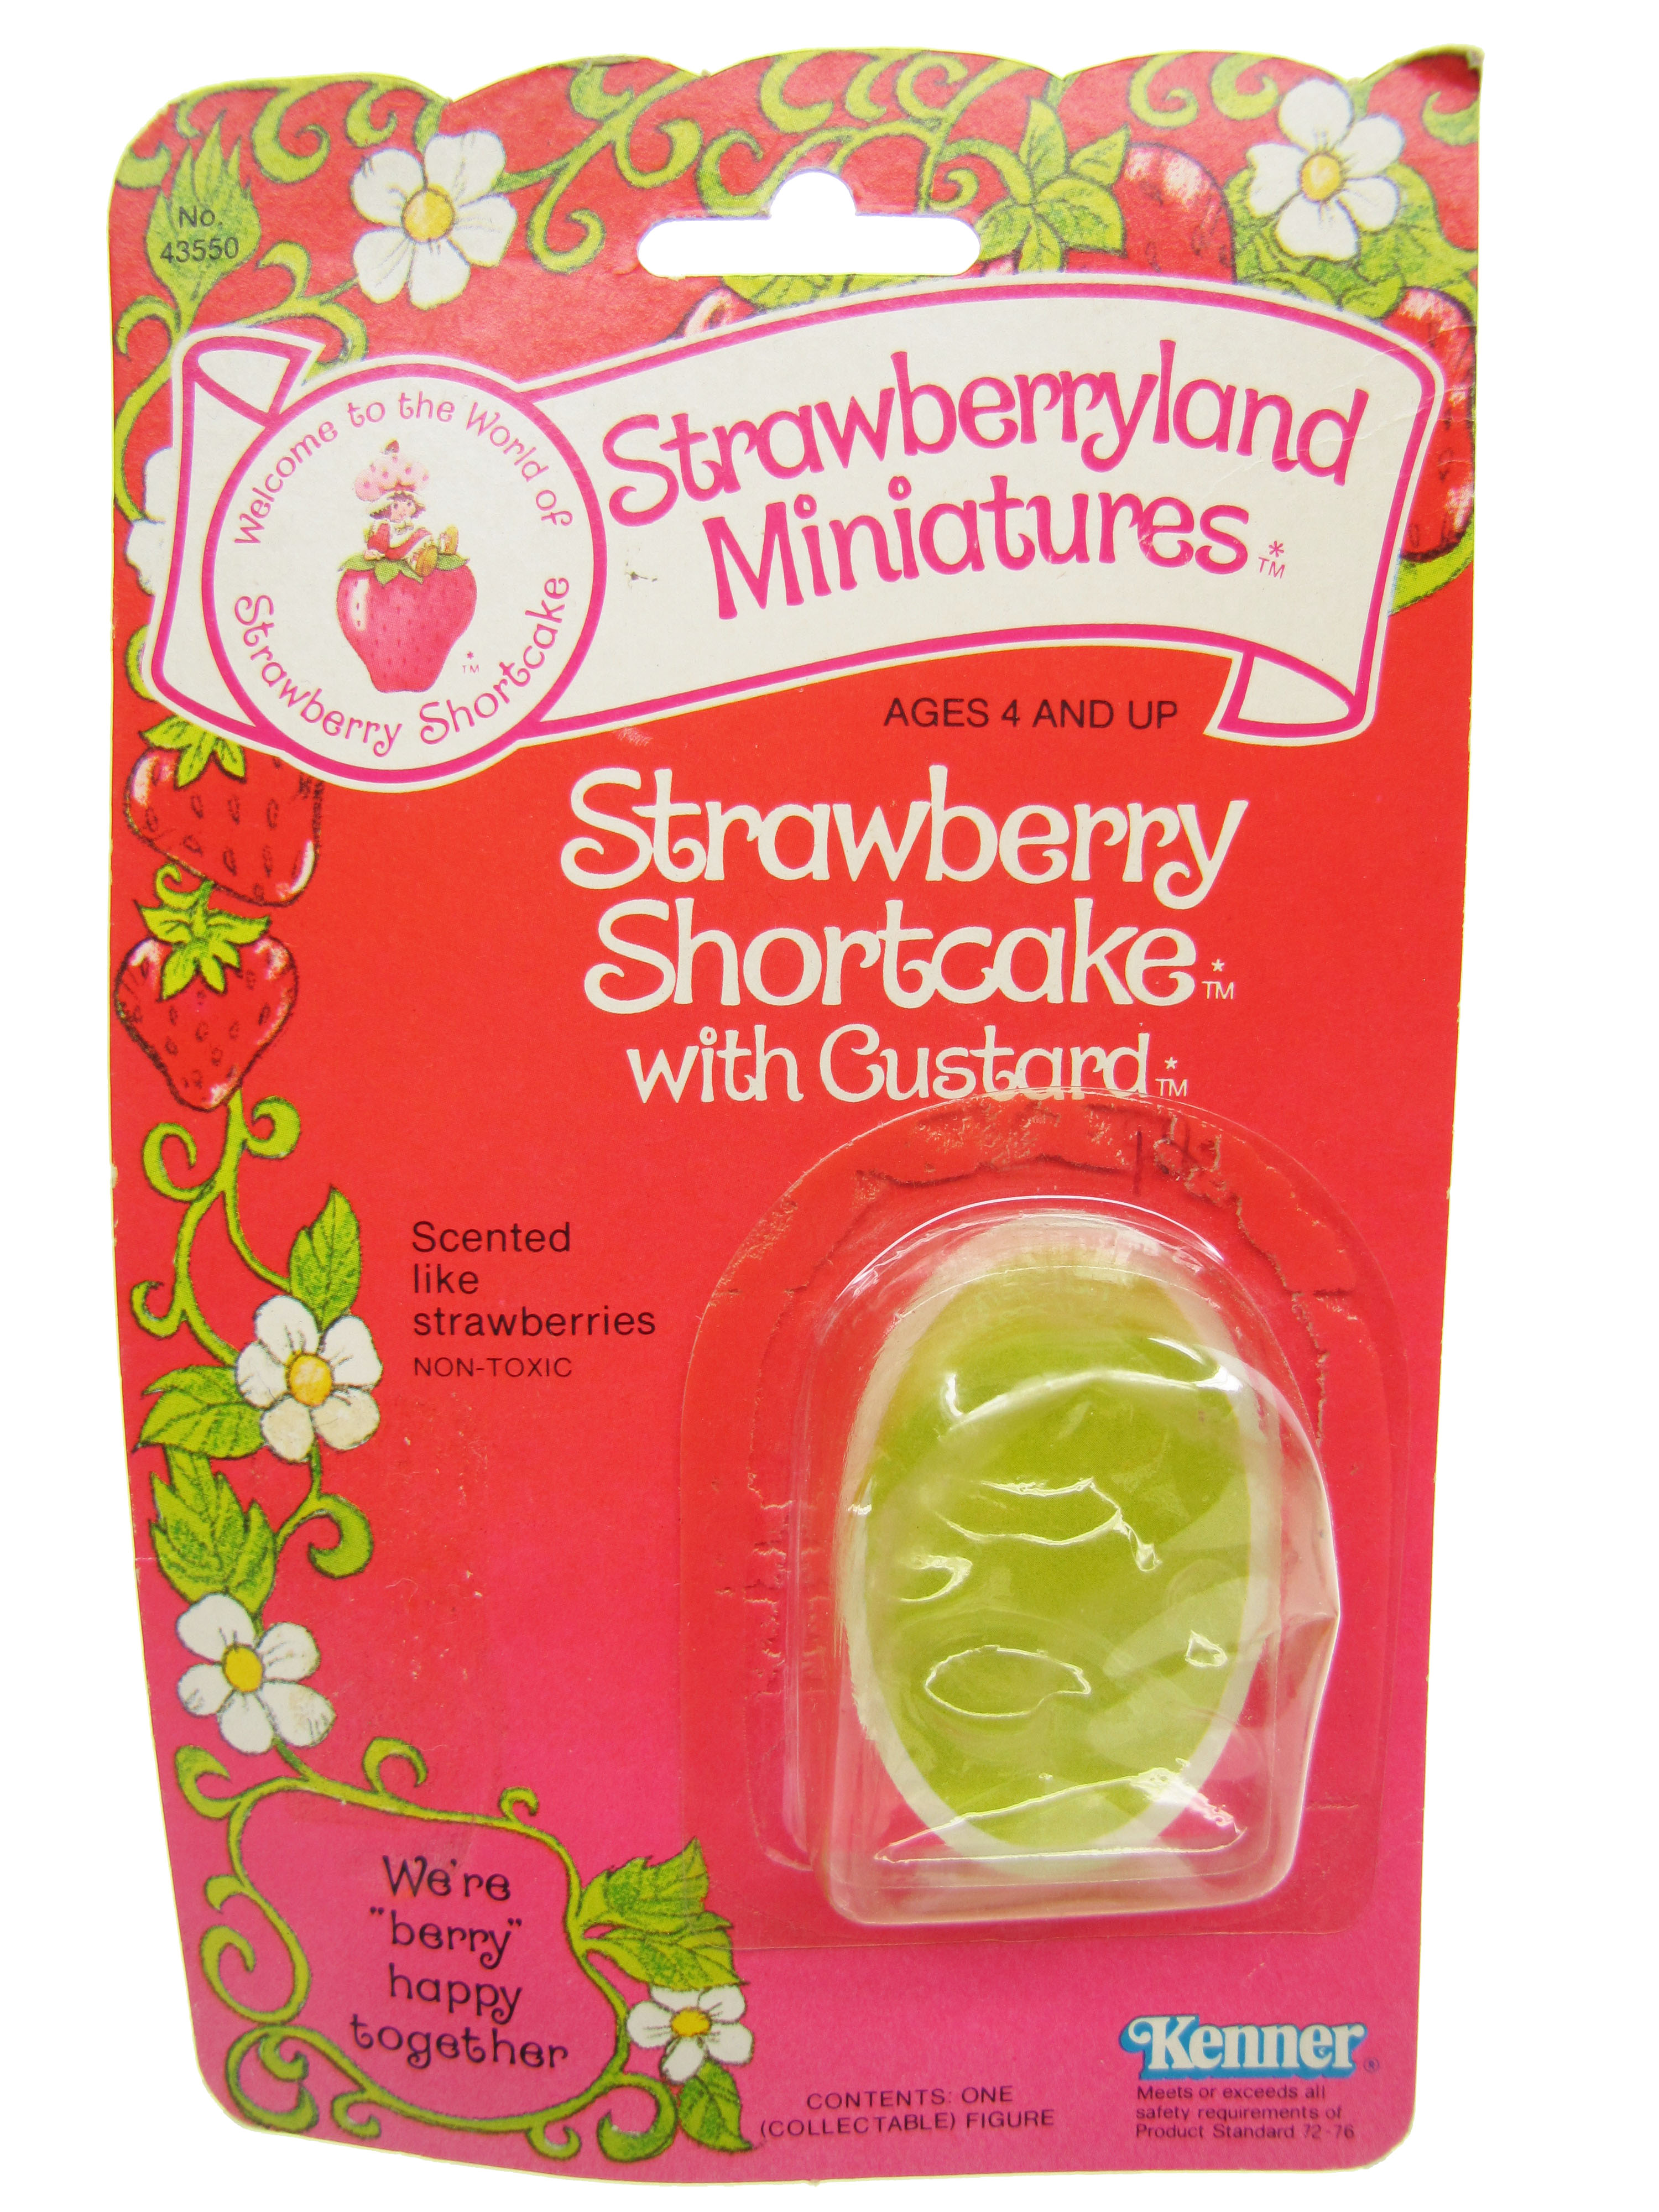 Strawberryland Miniatures Strawberry Shortcake with Custard Card